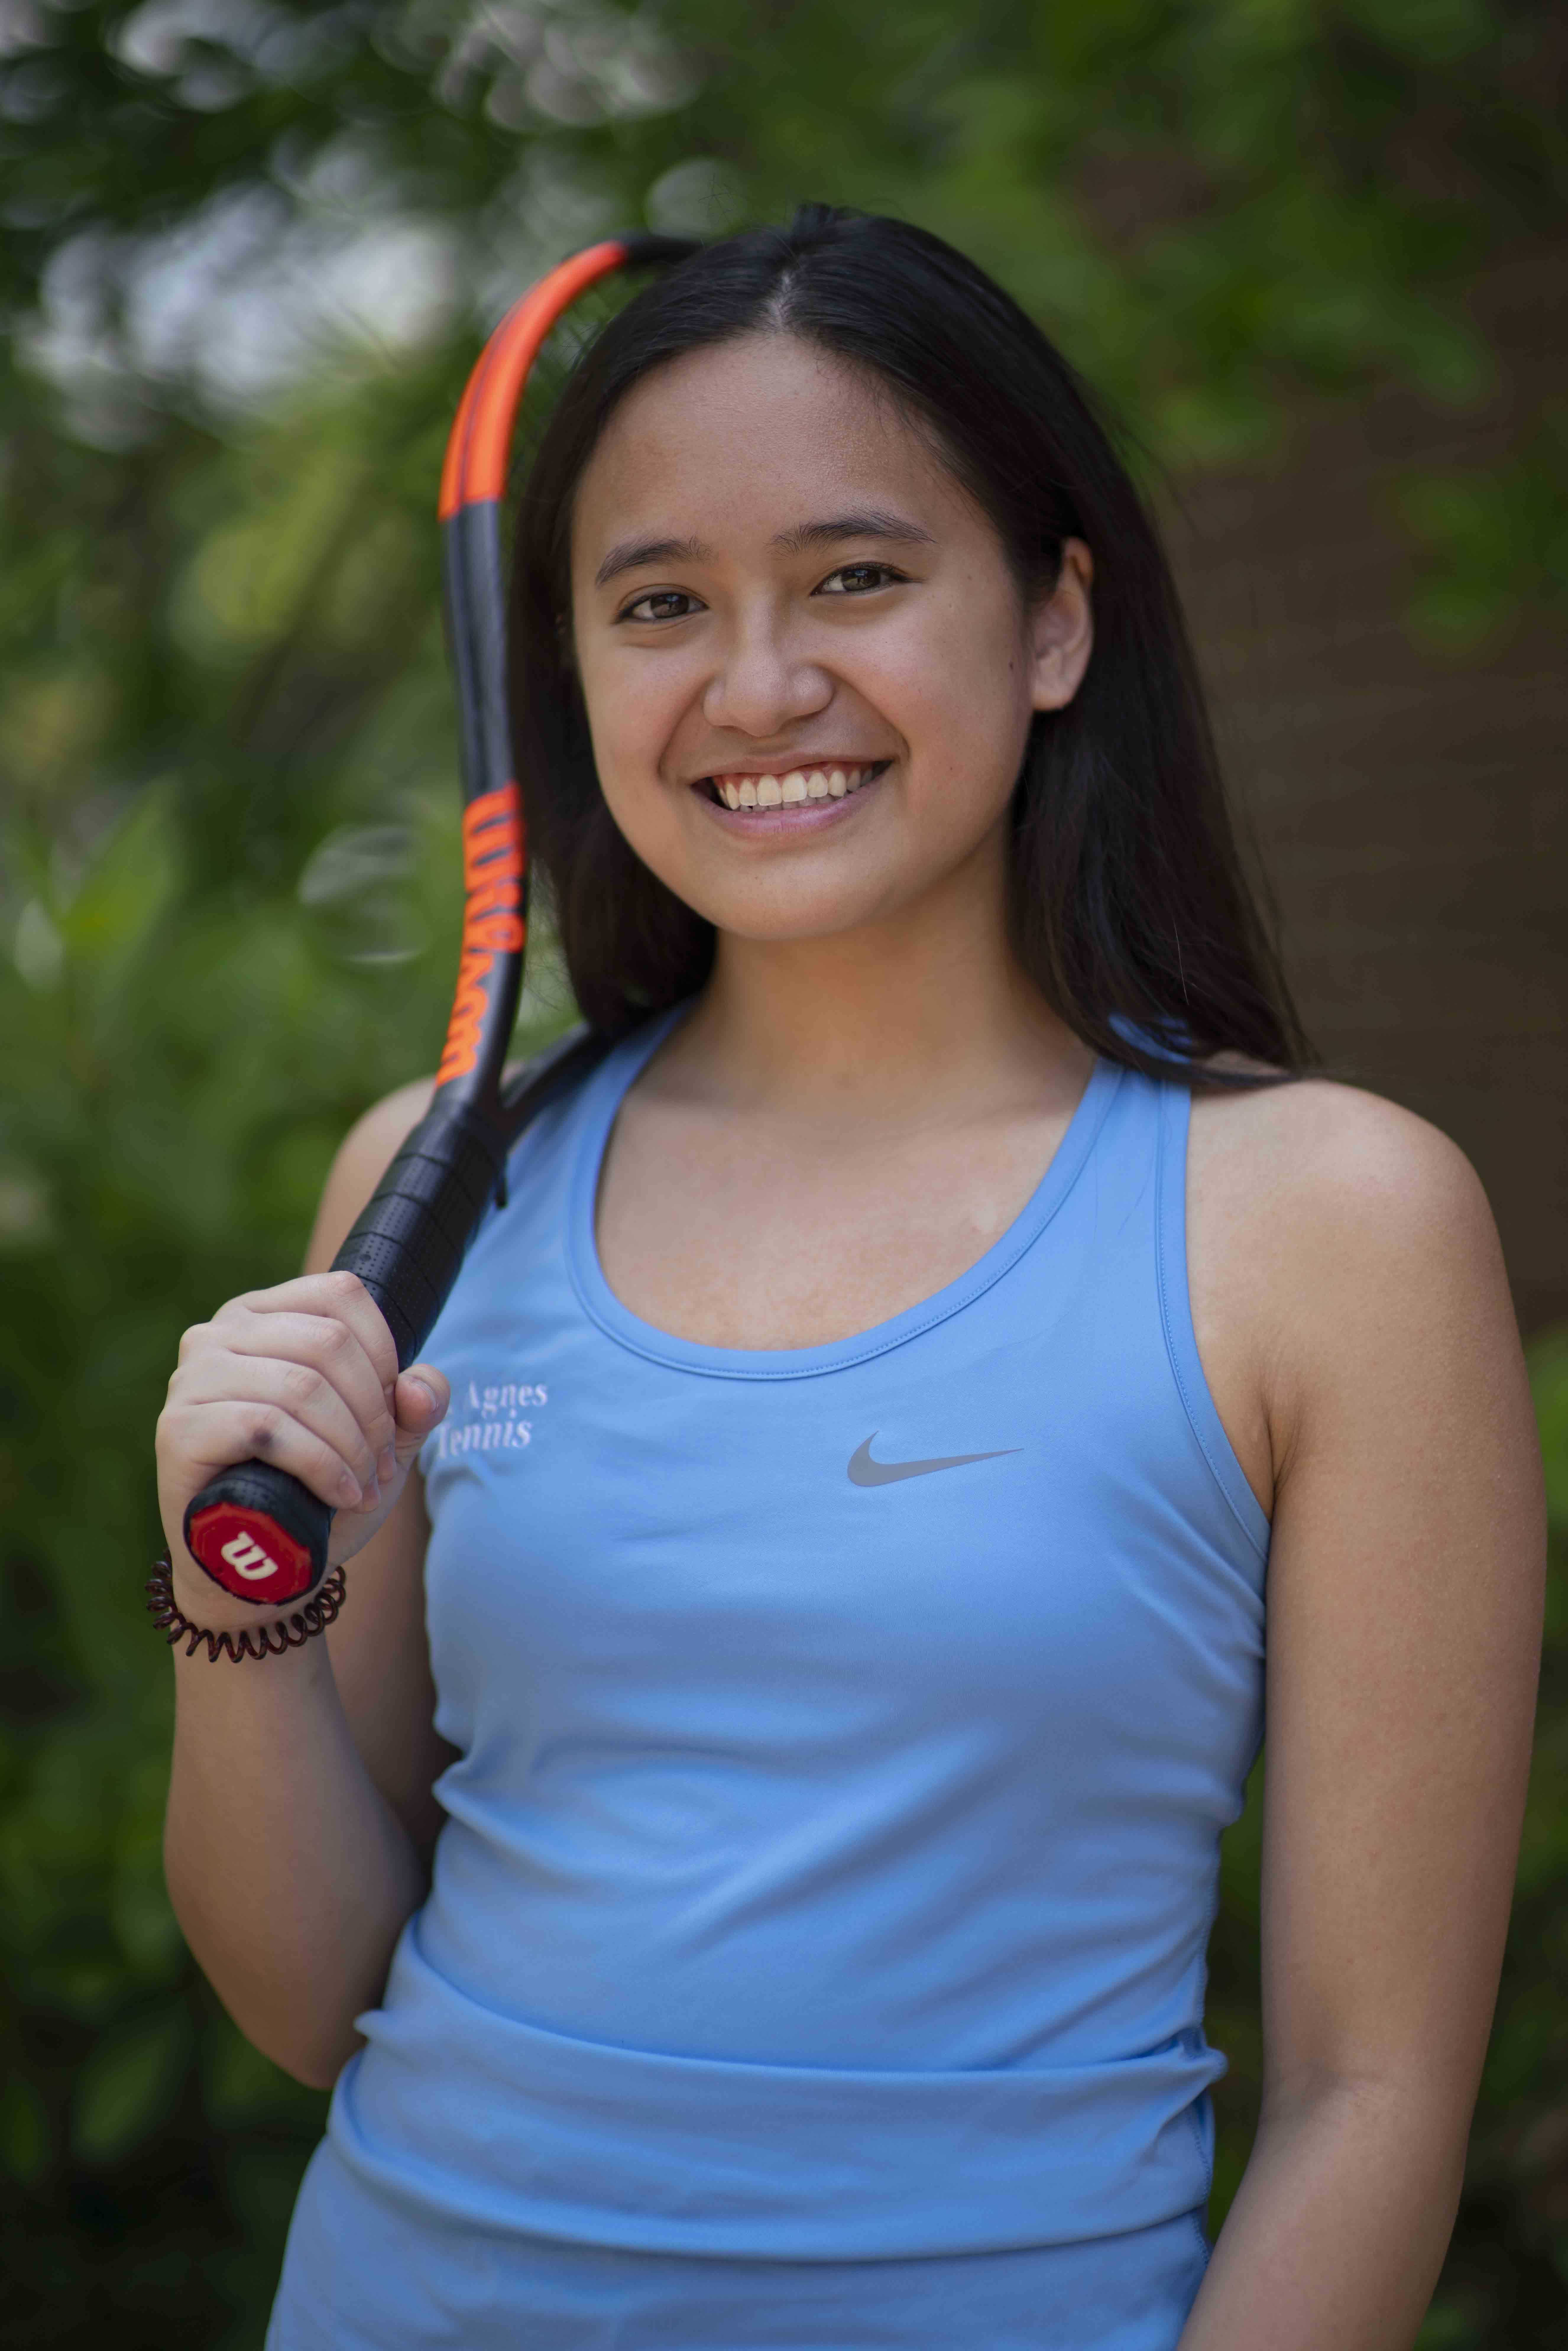 Profile: Denise Geronimo, Class of 2020